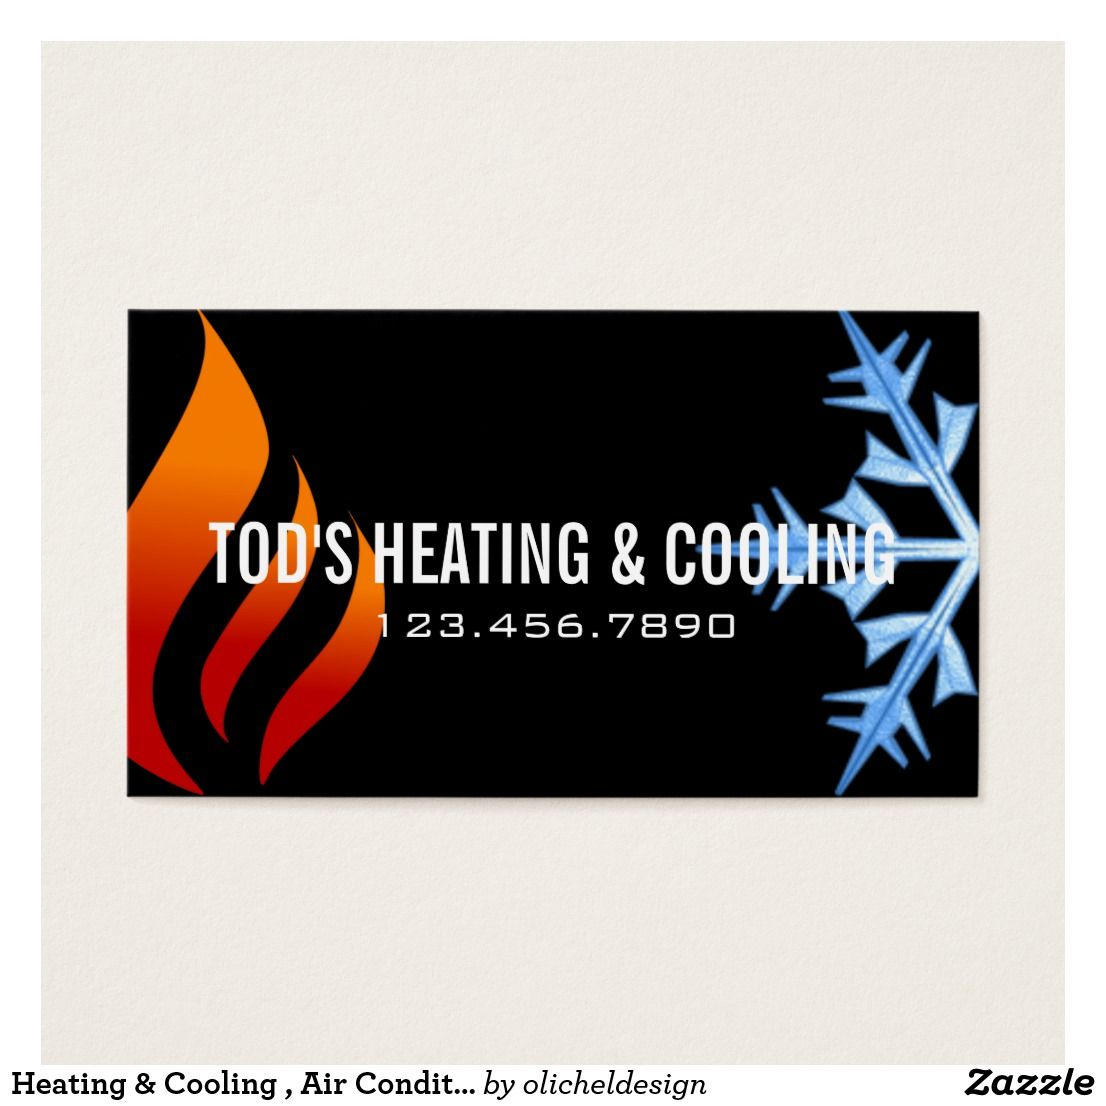 Heating & Cooling , Air Conditioning HVAC Business Card | Business cards